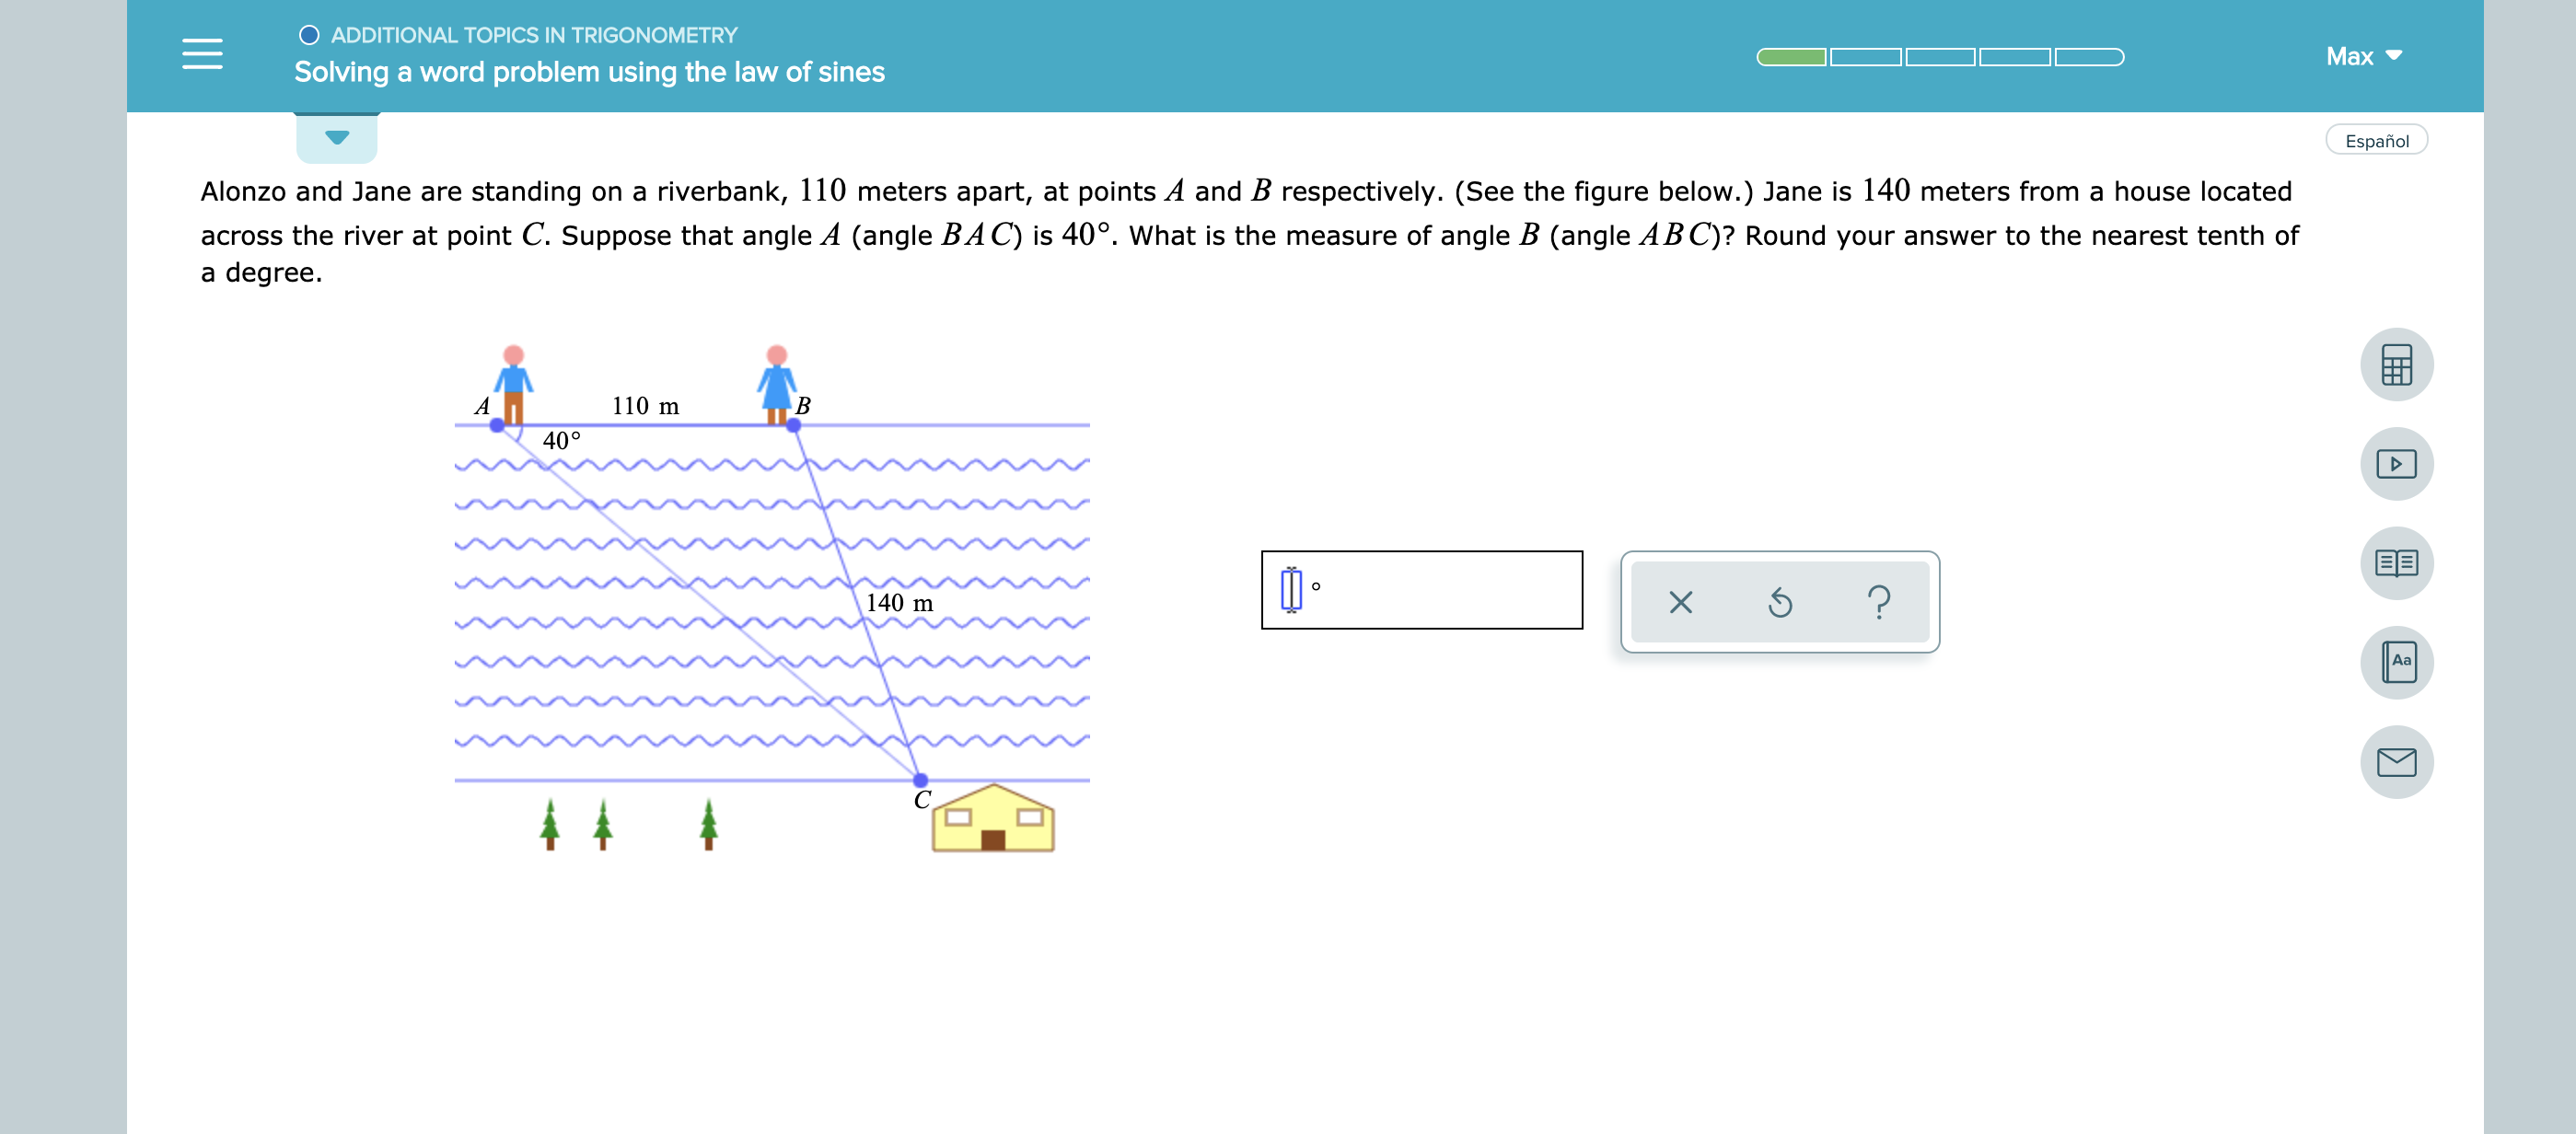 ADDITIONAL TOPICS IN TRIGONOMETRY Max Solving a word problem using the law of sines Español Alonzo and Jane are standing on a riverbank, 110 meters apart, at points A and B respectively. (See the figure below.) Jane is 140 meters from a house located across the river at point C. Suppose that angle A (angle BAC) is 40°. What is the measure of angle B (angle ABC)? Round your answer to the nearest tenth of a degree 110 m A В 40° ? 140 m Aa X -